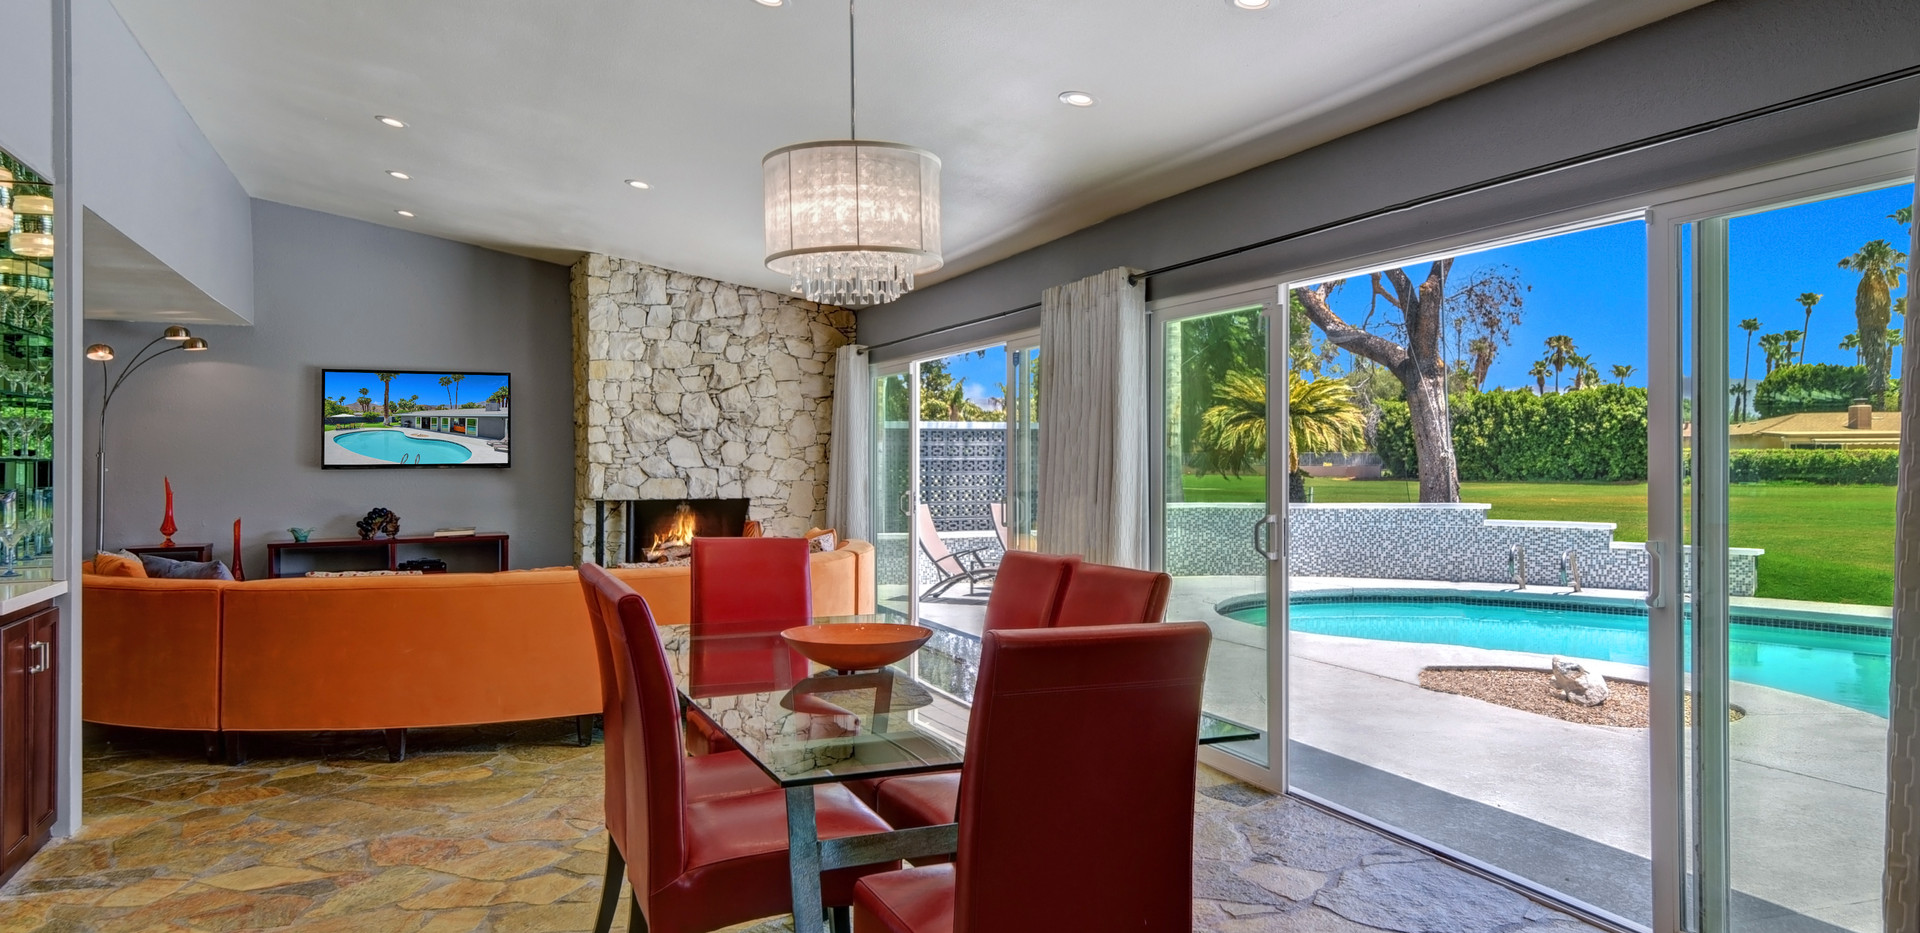 DINING ROOM TO LIVING ROOM AND POOL WITH